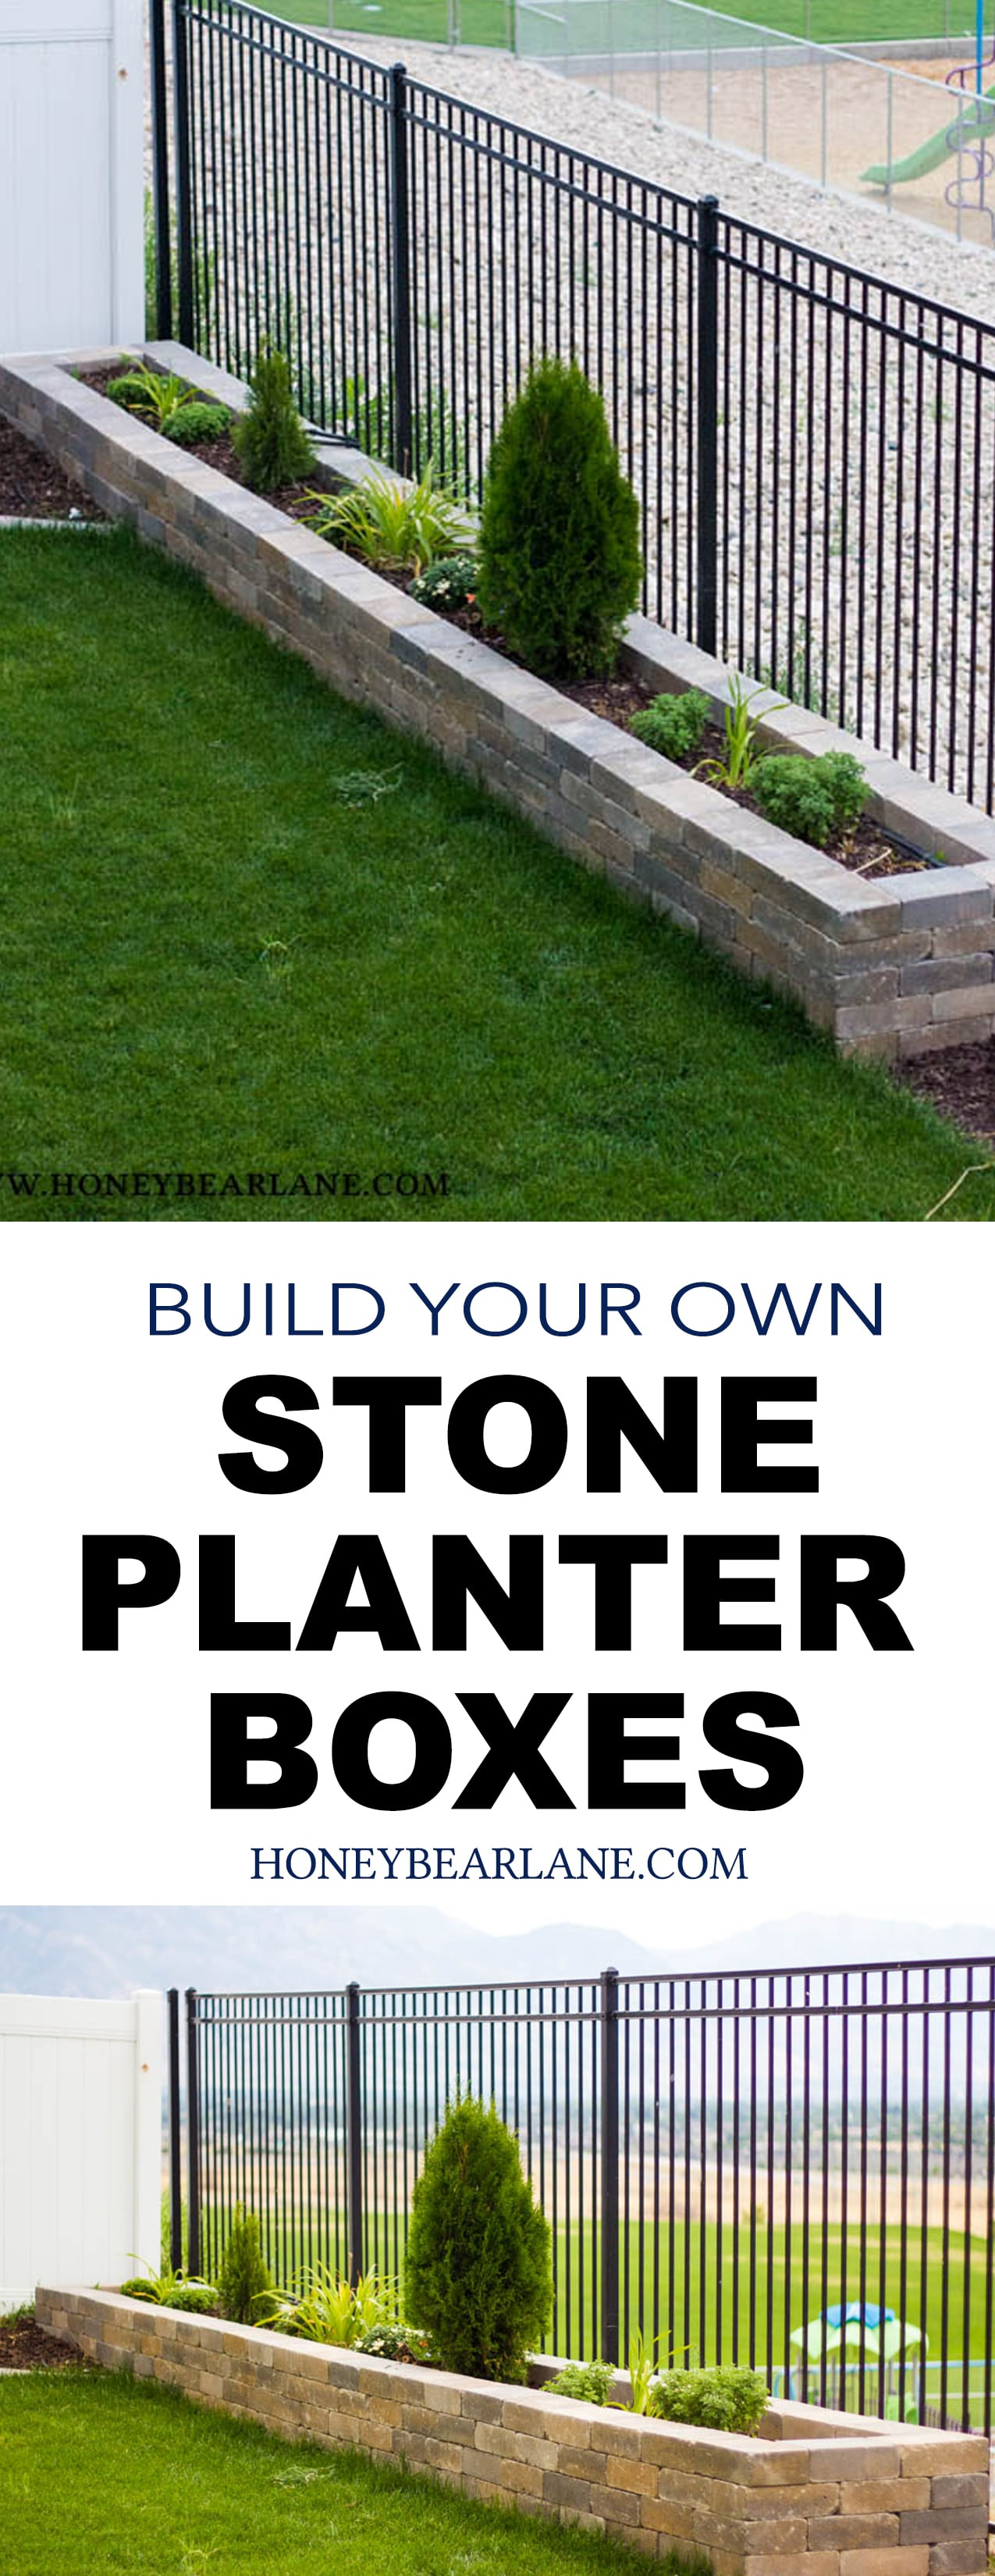 diy stone planter boxes